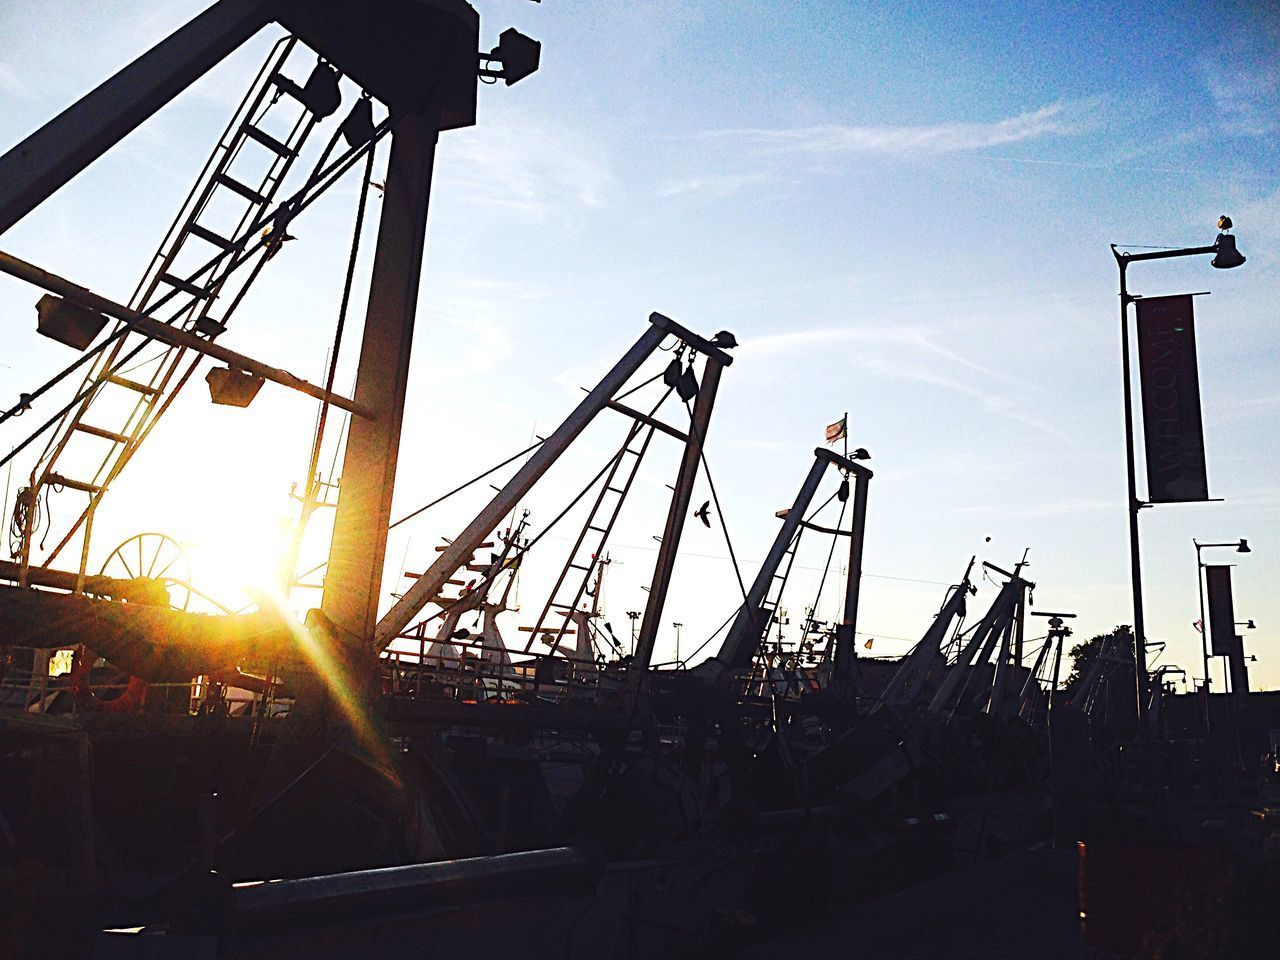 sunlight, sky, back lit, built structure, sunset, outdoors, no people, rollercoaster, amusement park, architecture, day